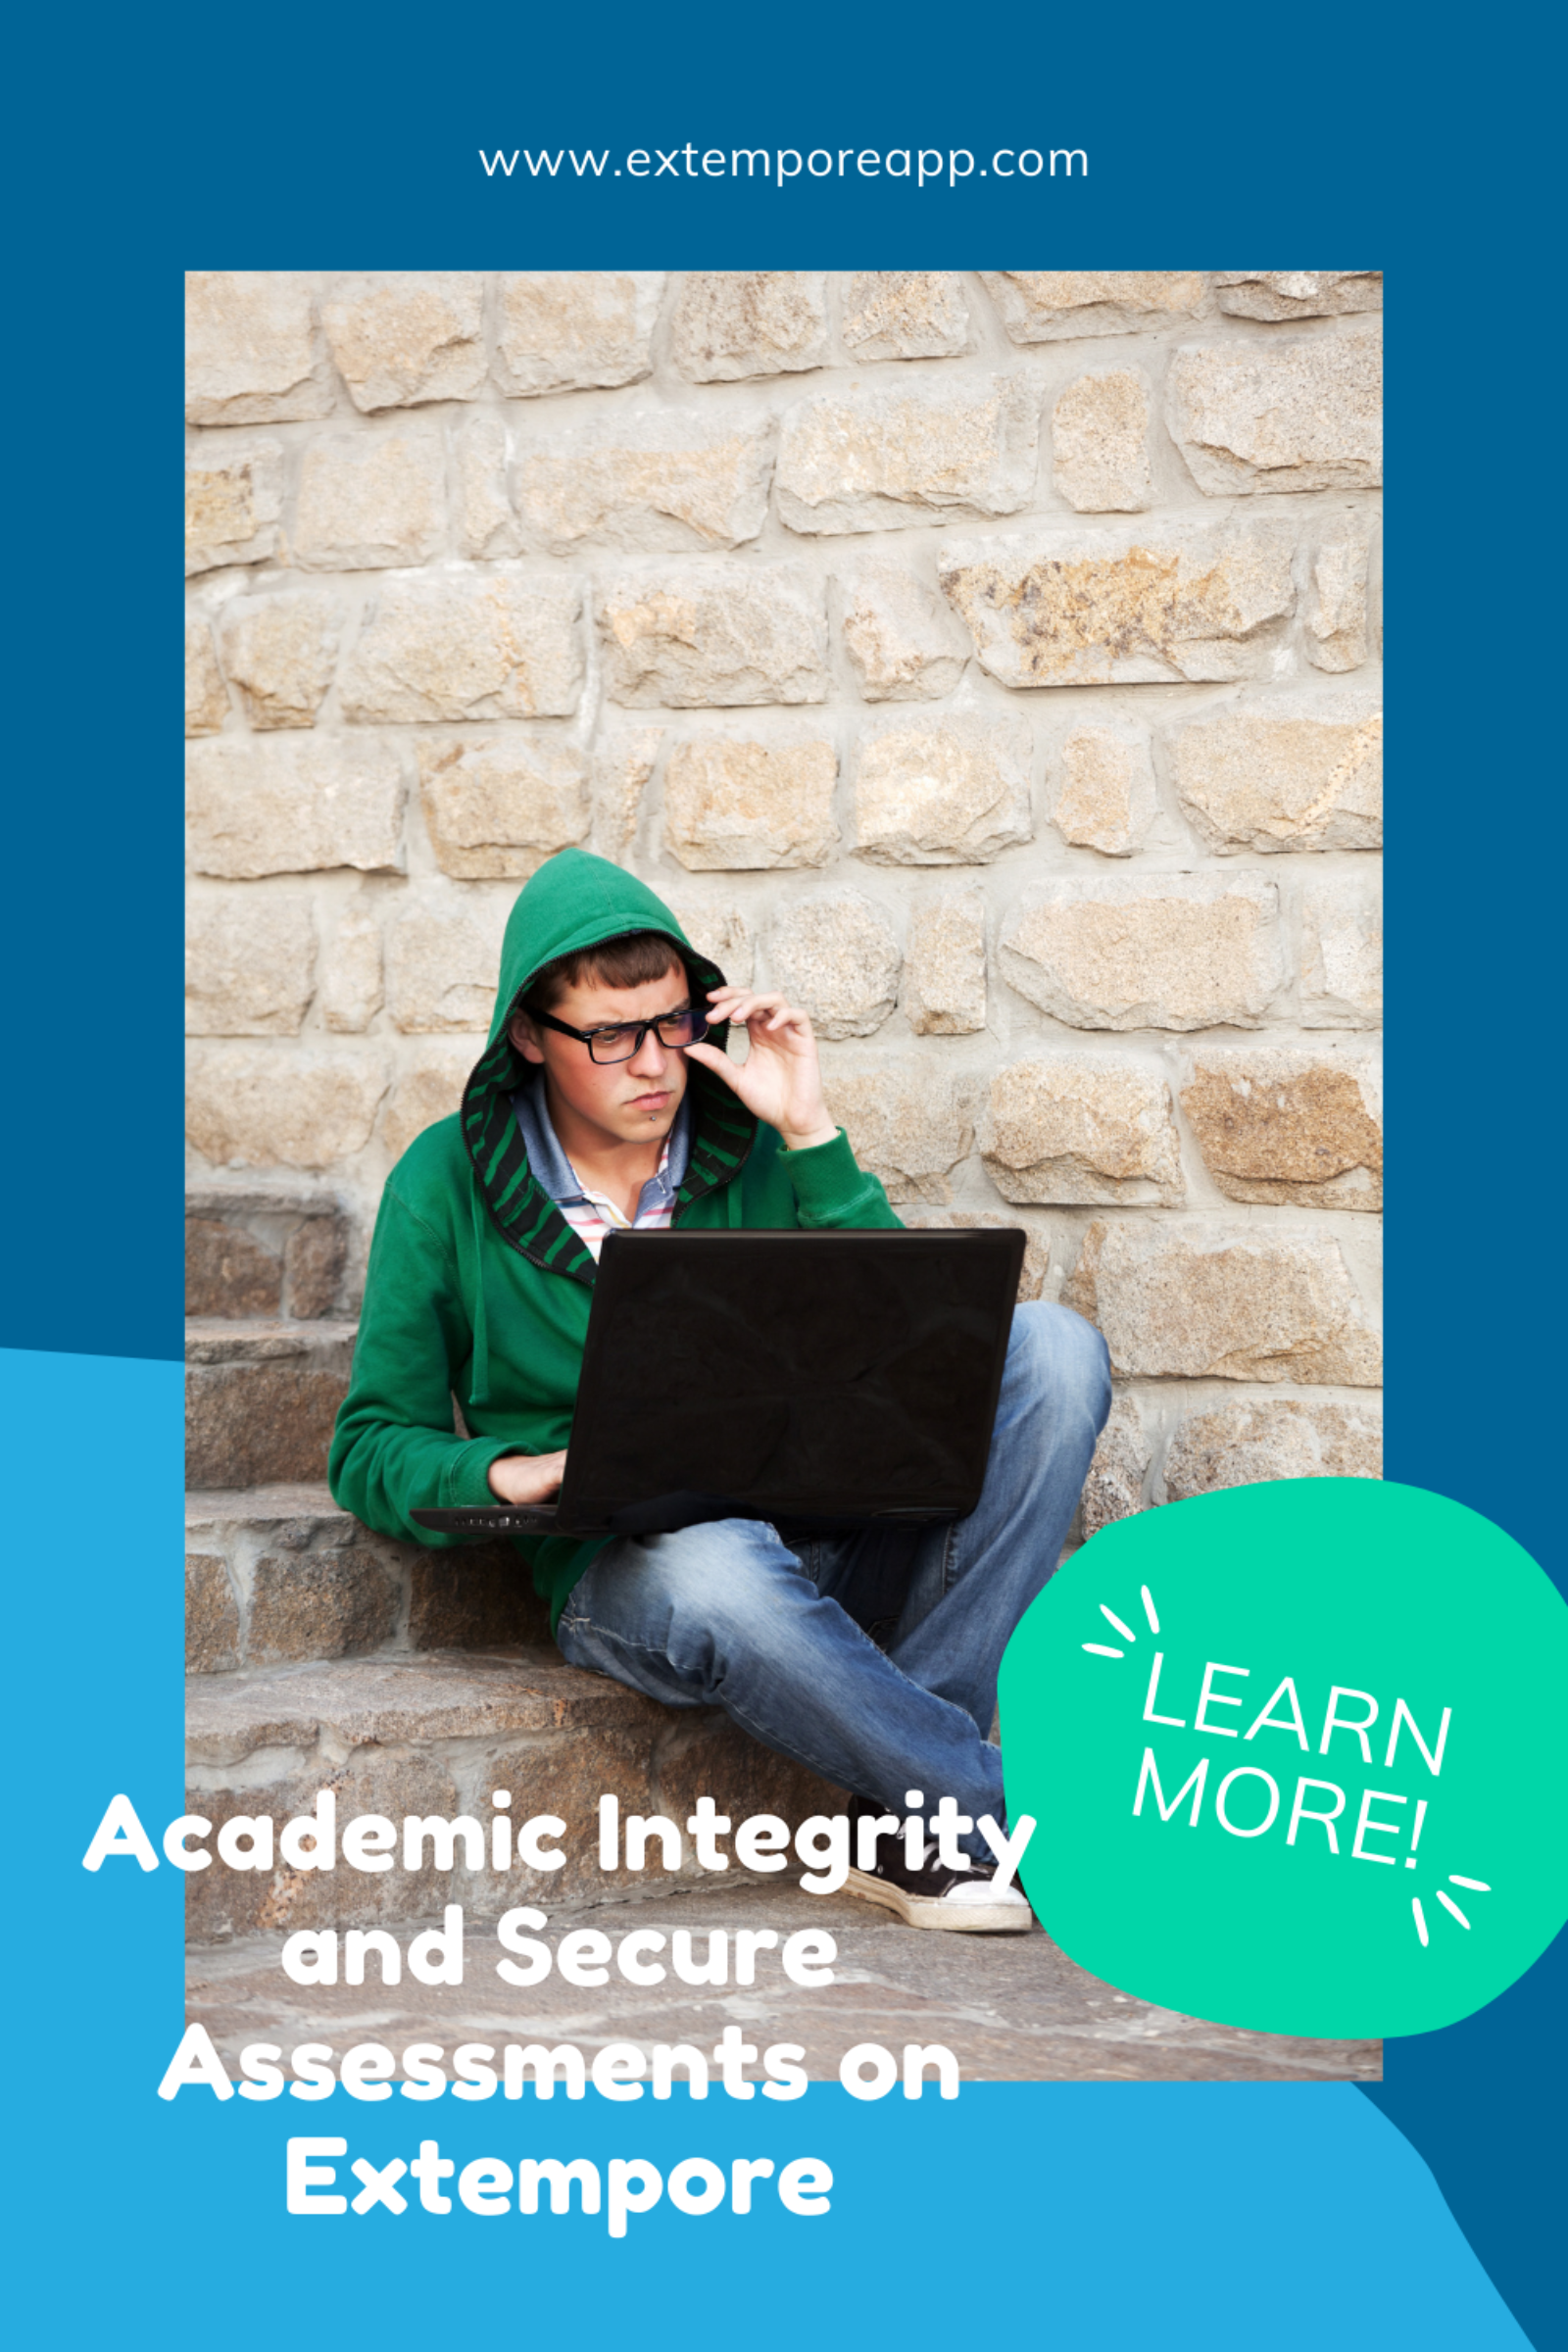 Academic Integrity on Extempore